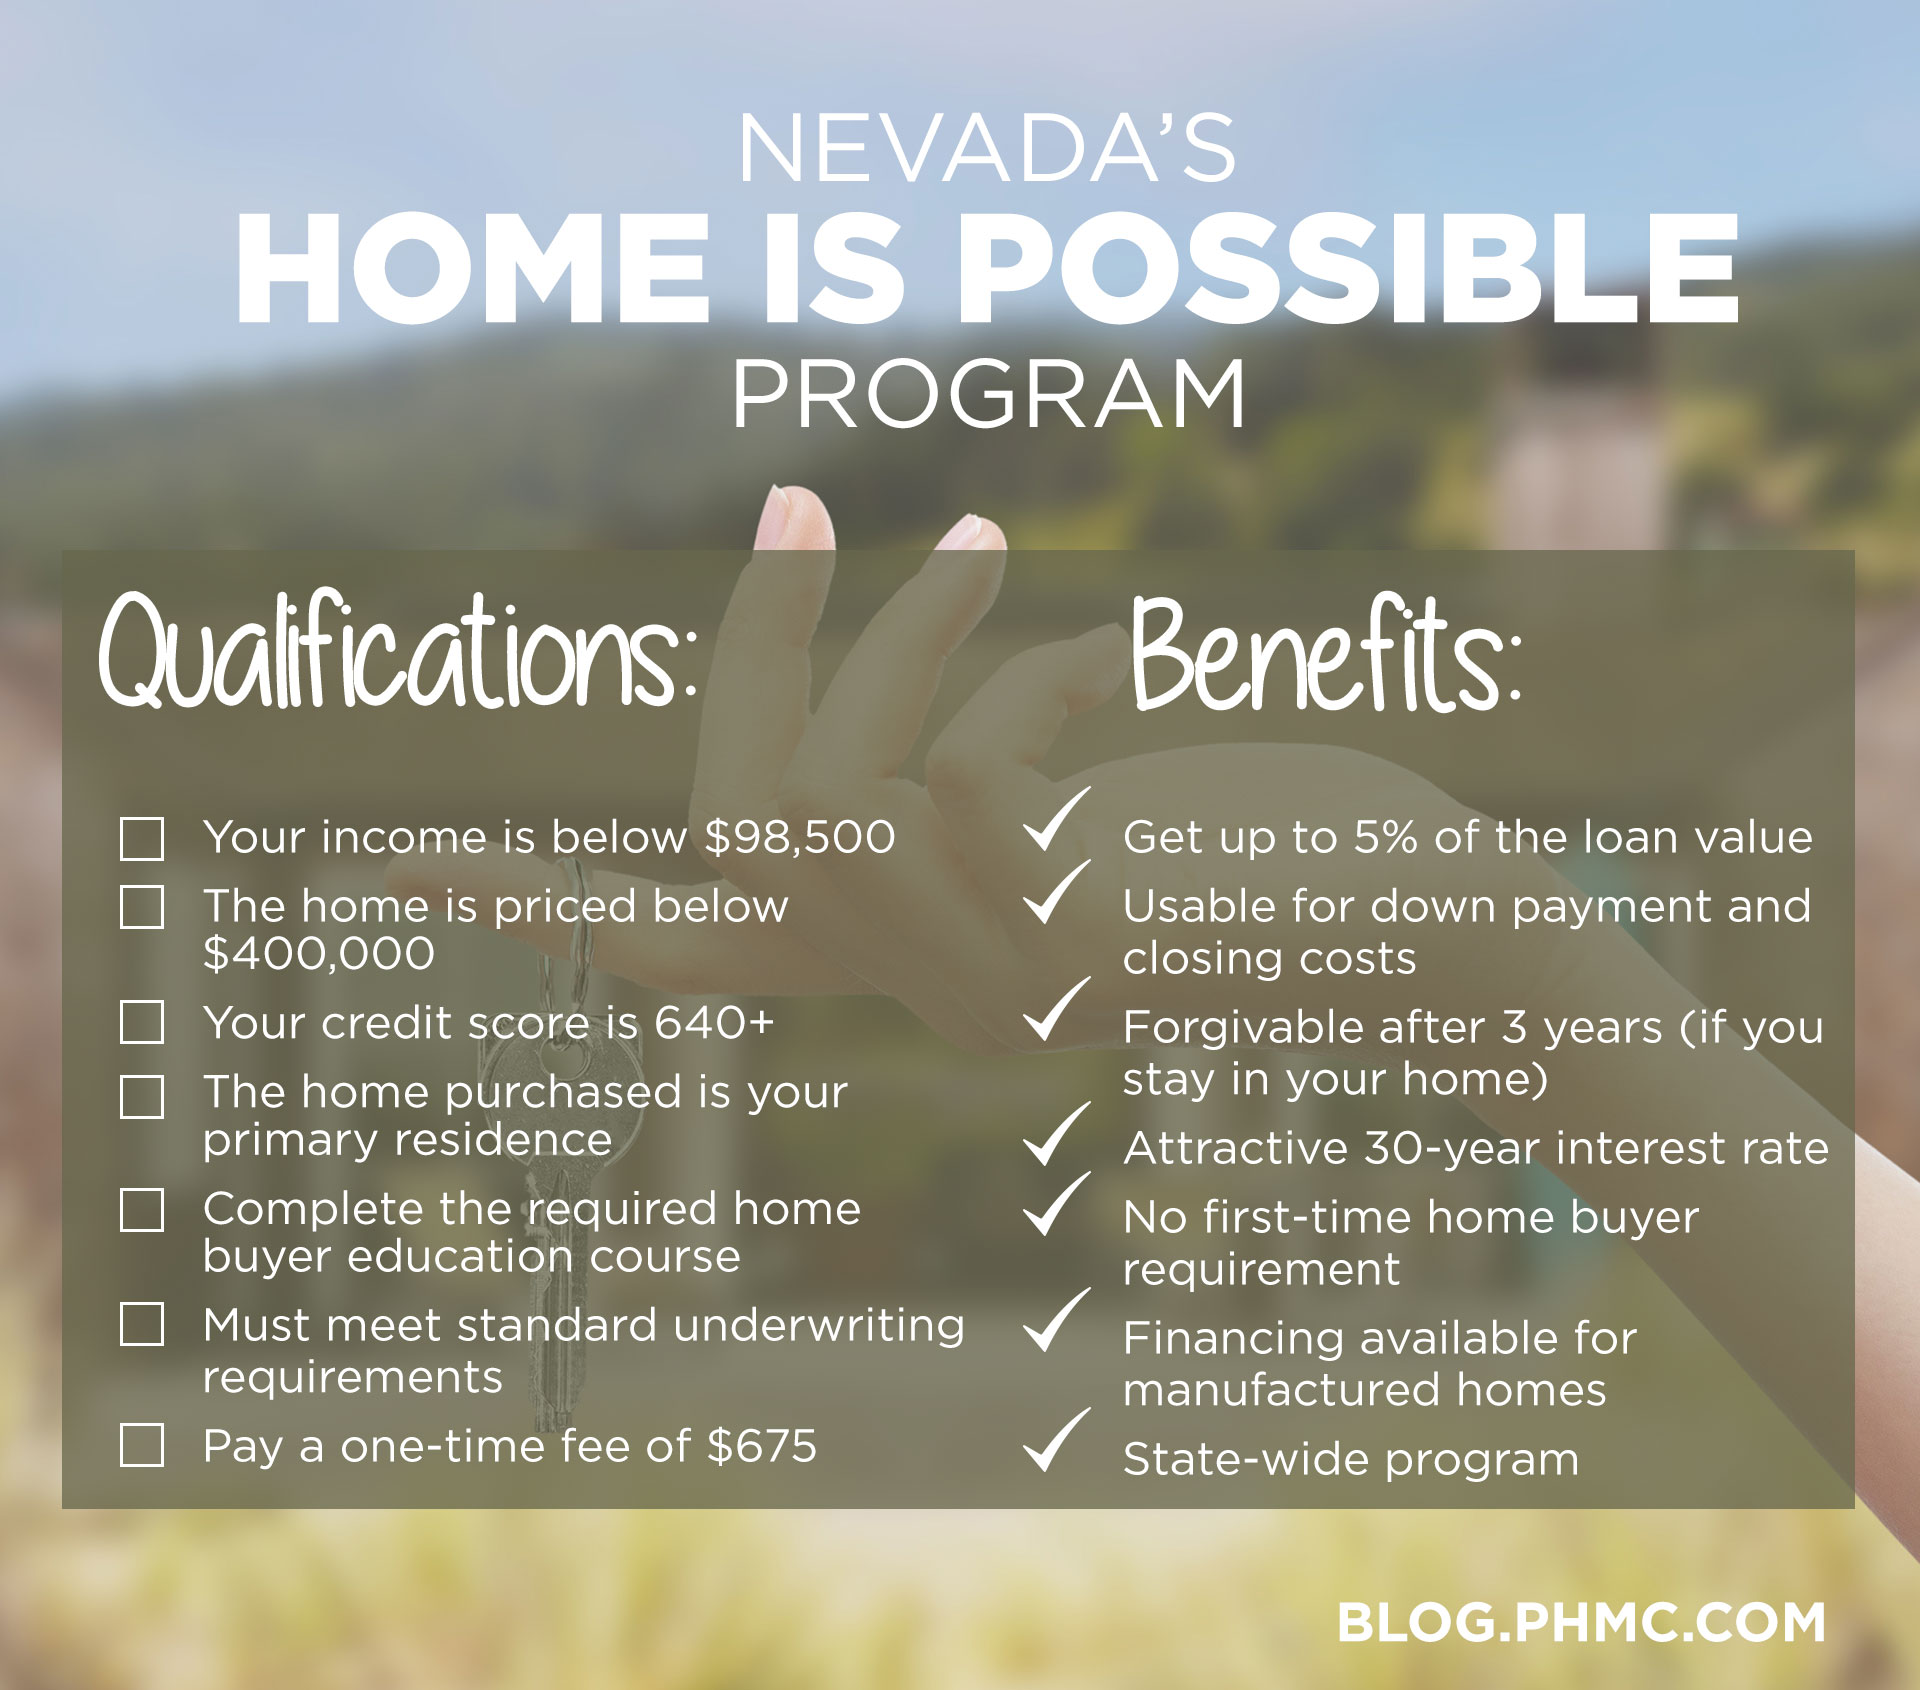 Nevada's Home is Possible Program Qualifications Your income is below $98,500? The home is priced below $400,000 Your credit score is 640+ The home purchased is your primary residence Complete the required home buyer education course Must meet standard underwriting requirements Pay a one-time fee of $675 and Benefits Get up to 5% of the loan value Usable for down payment and closing costs Forgivable after three years (if your stay in your home) Attractive 30-year interest rate No first-time home buyer requirement Financing available for manufactured homes State-wide program